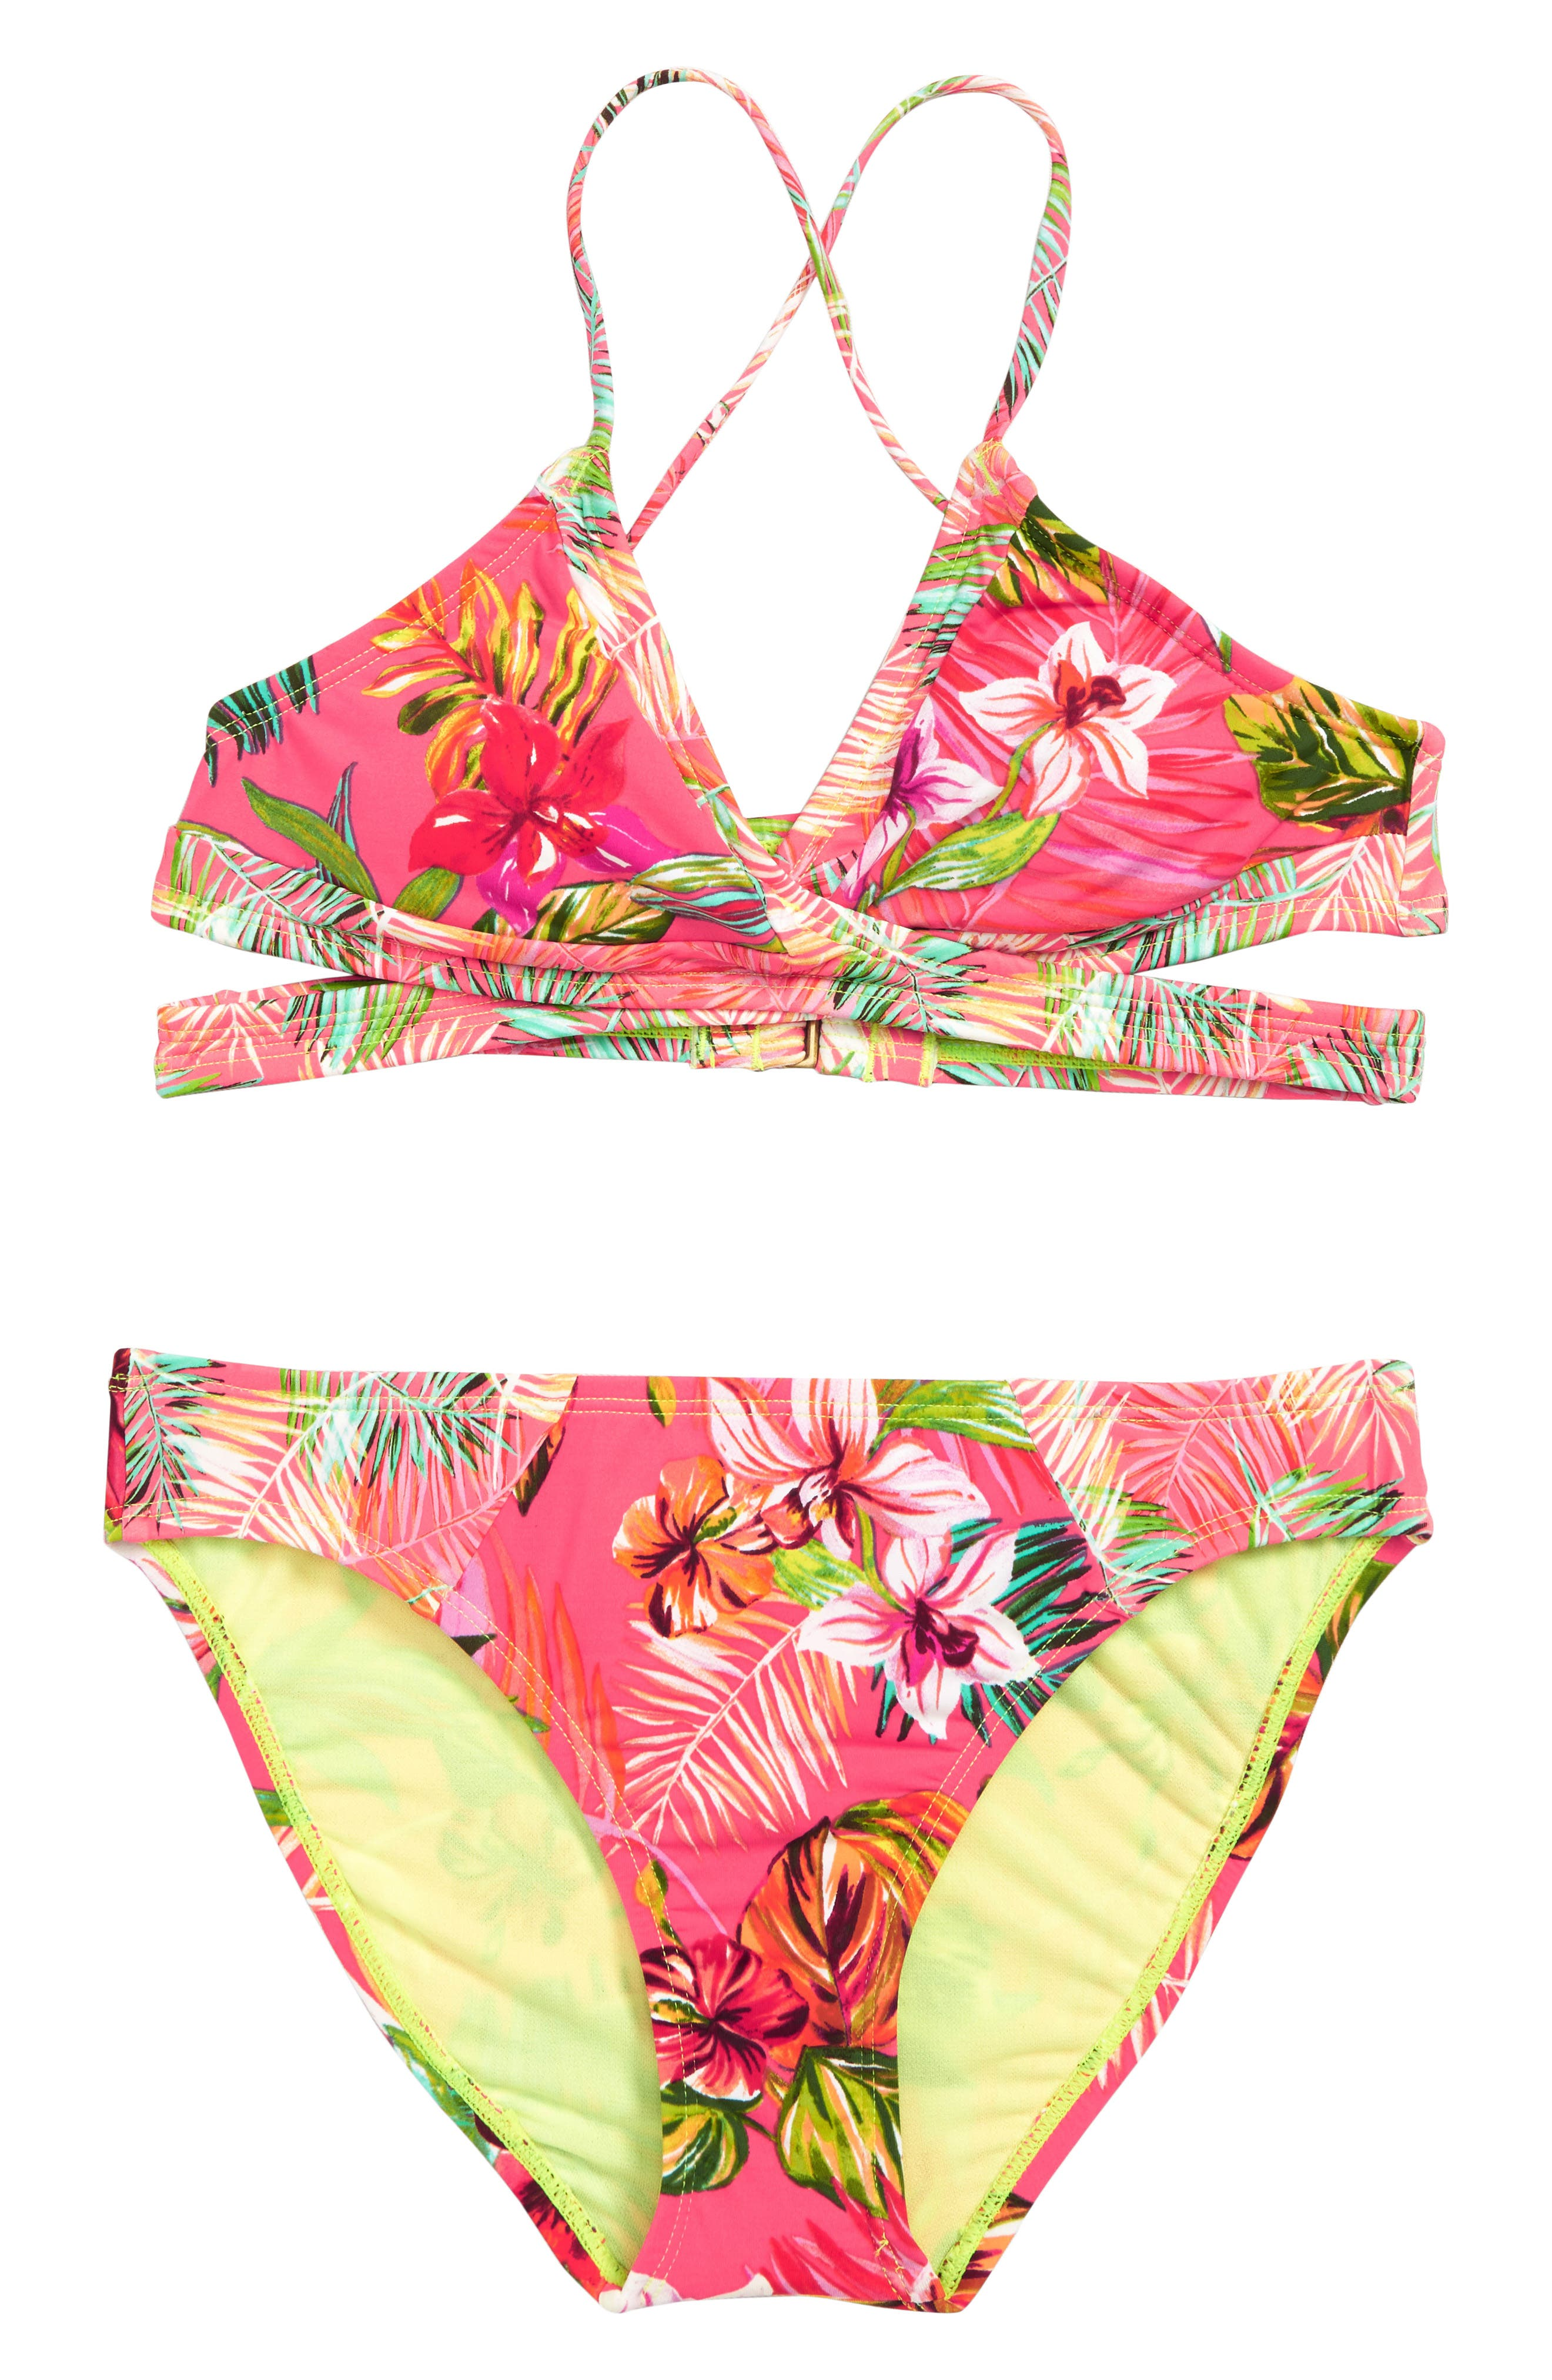 HOBIE Flor All Nothing Two-Piece Swimsuit, Main, color, BRIGHT PINK